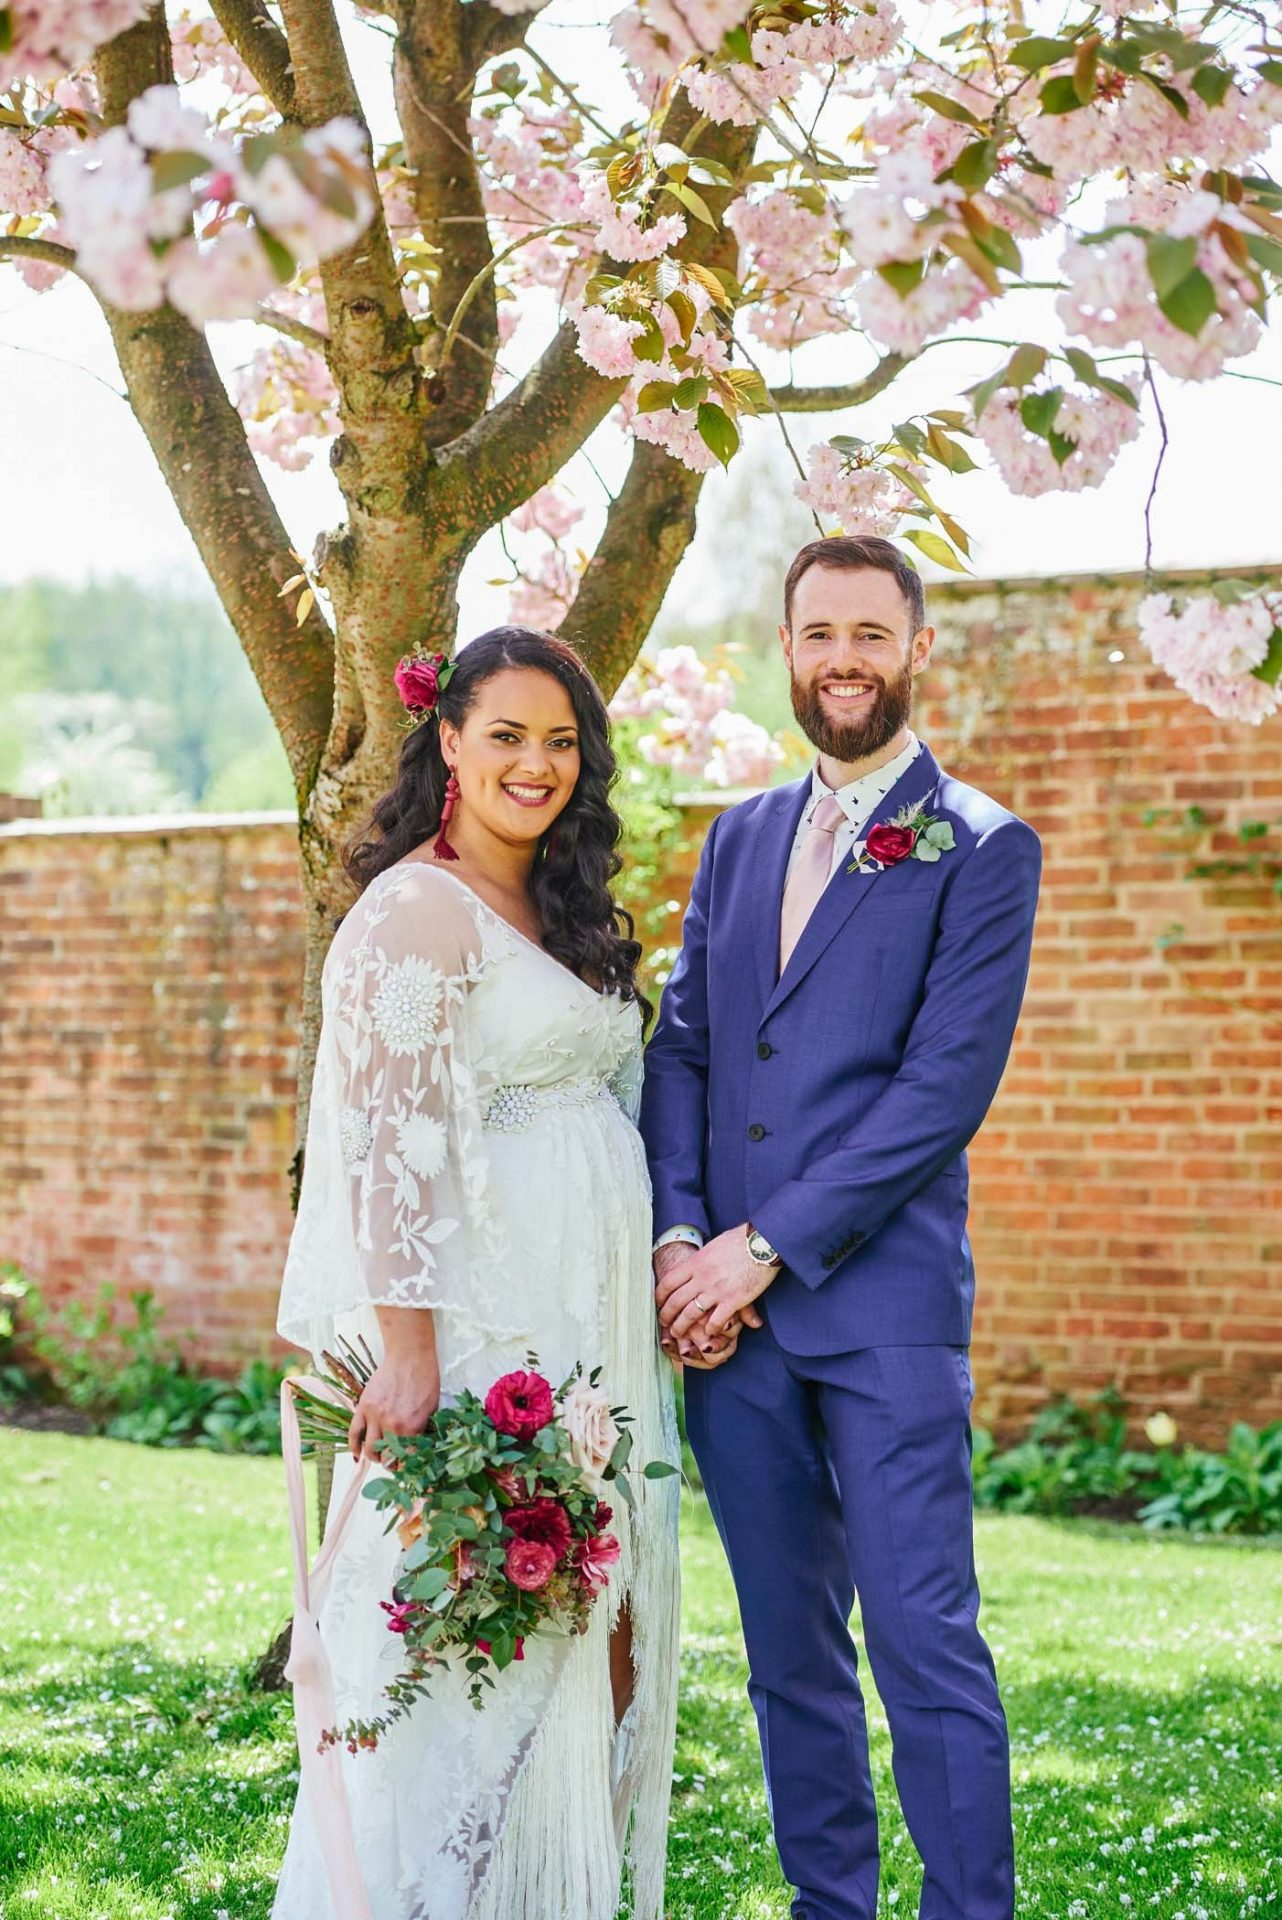 bohemian bride and groom stood under cherry blossom tree